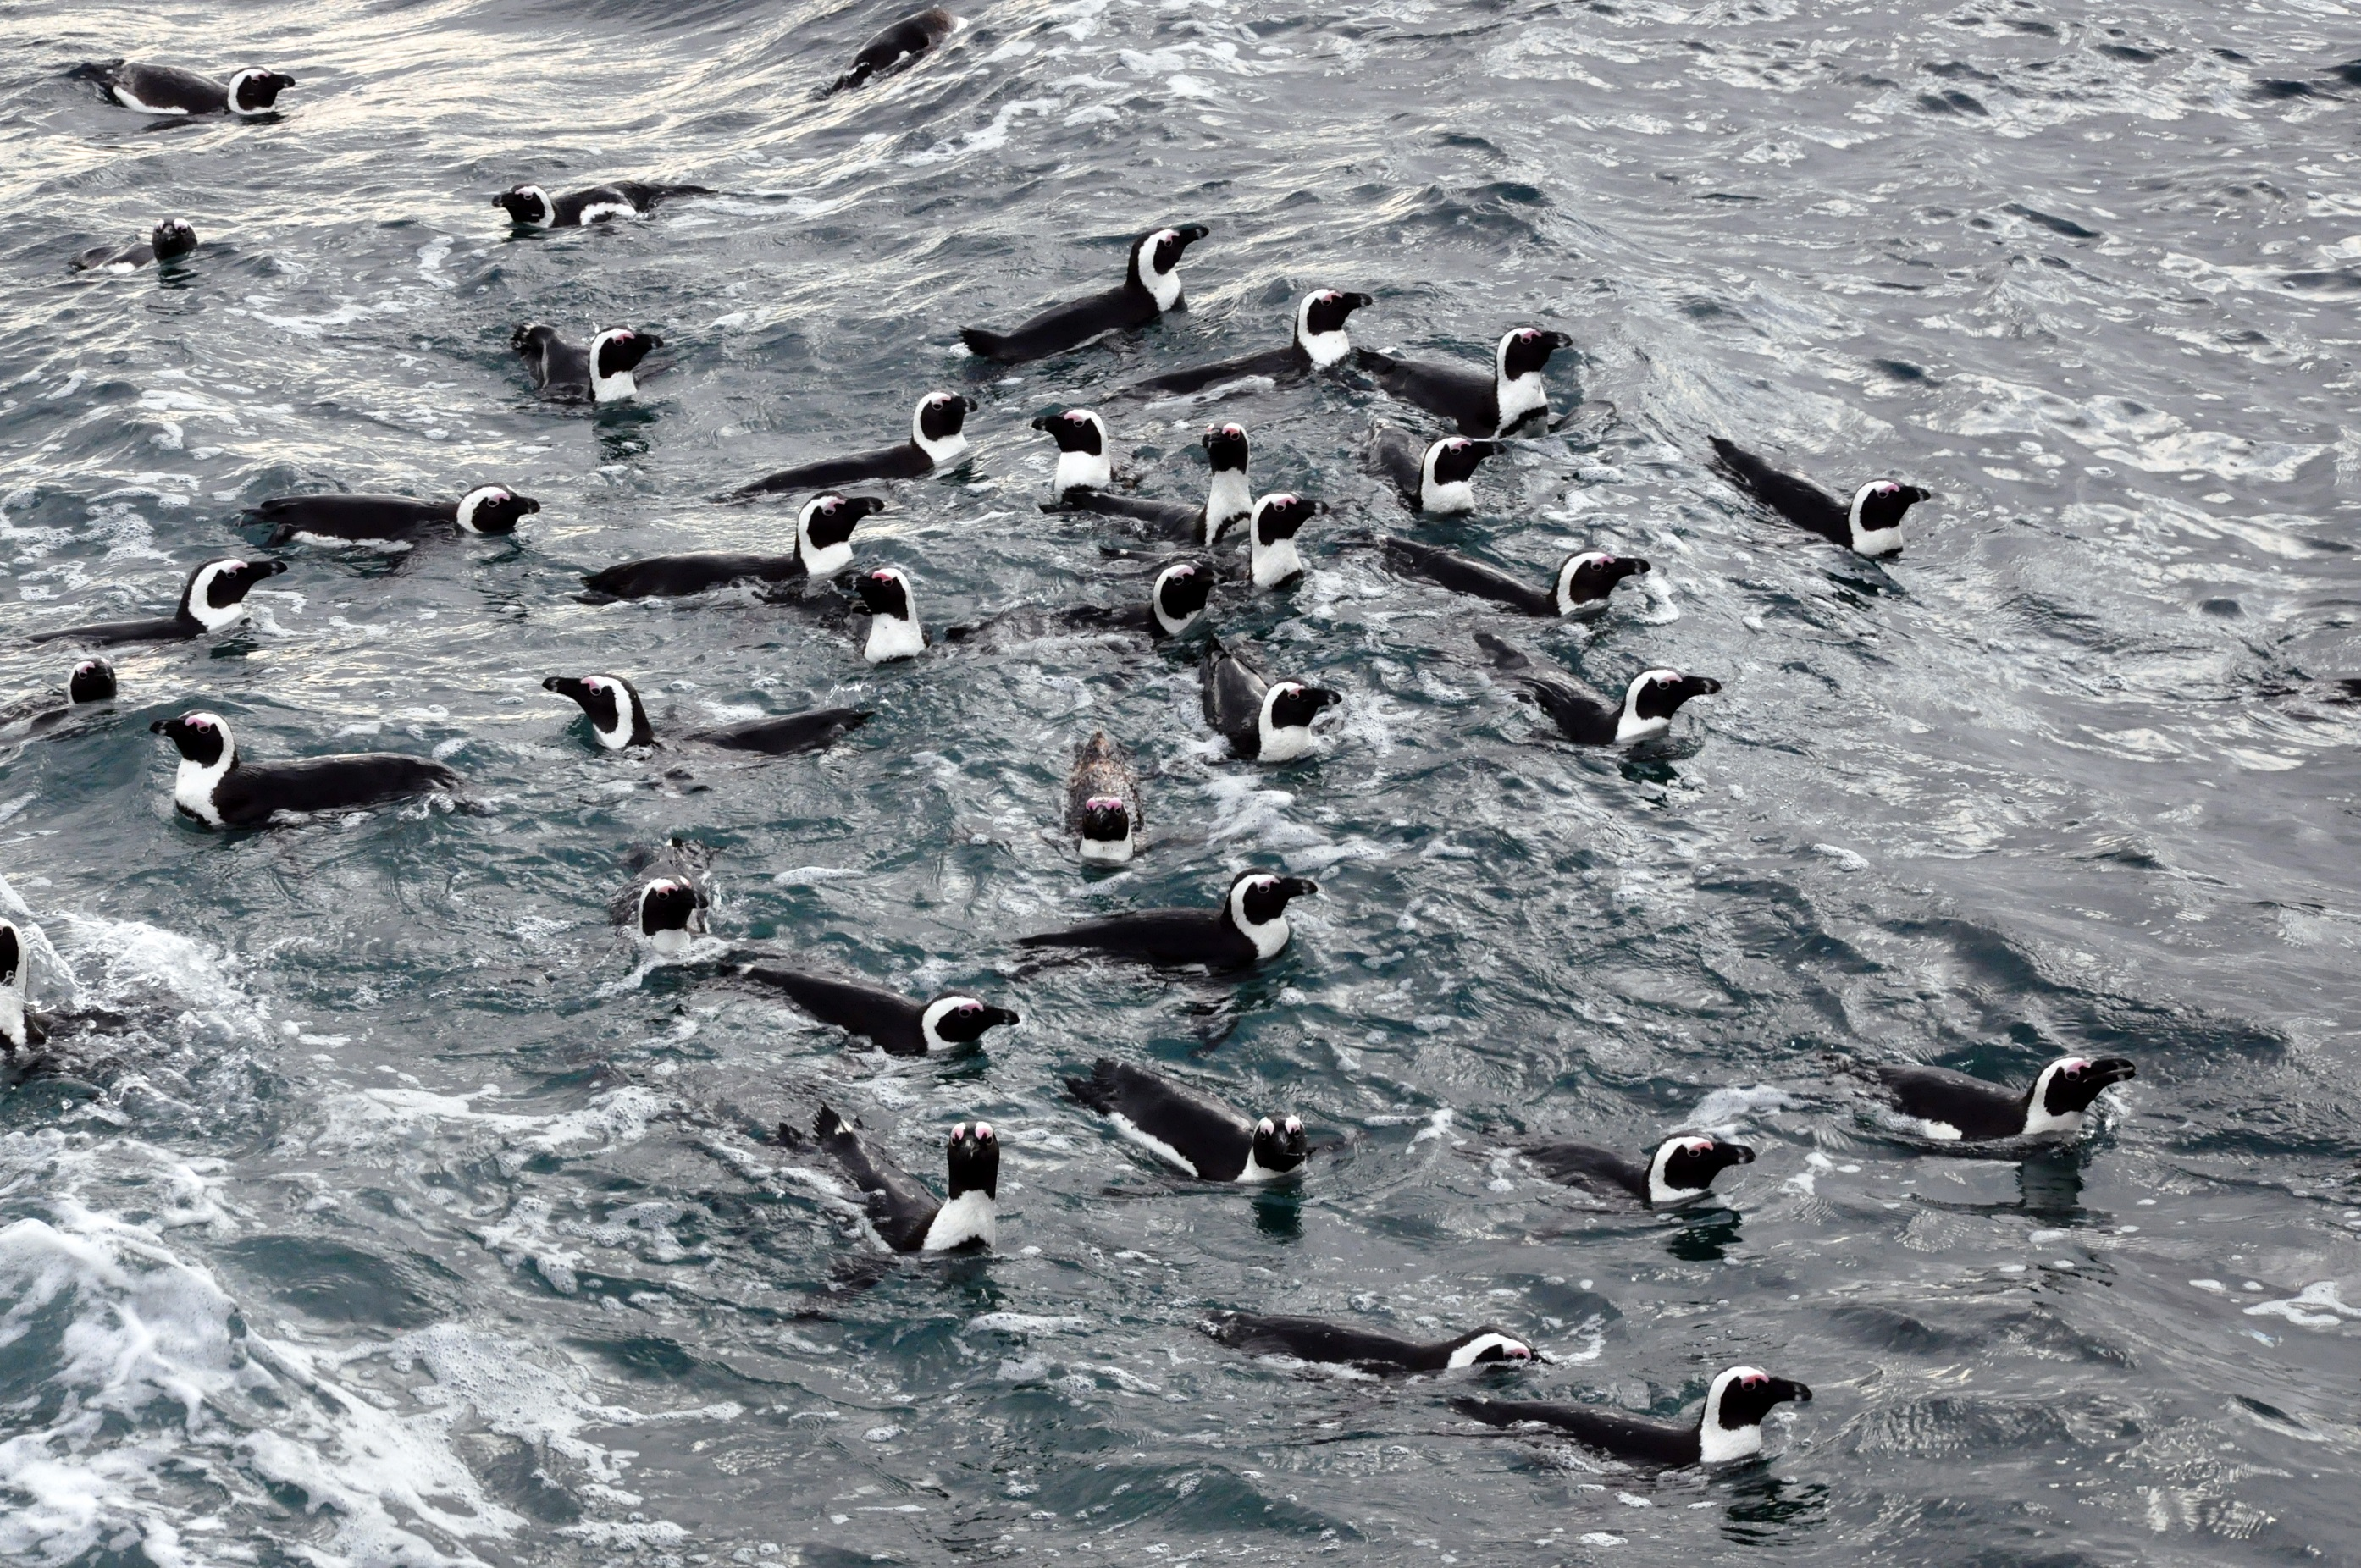 Colonies of African penguins could benefit from the introduction of a no-fishing zones, a study suggests (Richard Sherley/University of Exeter/PA).